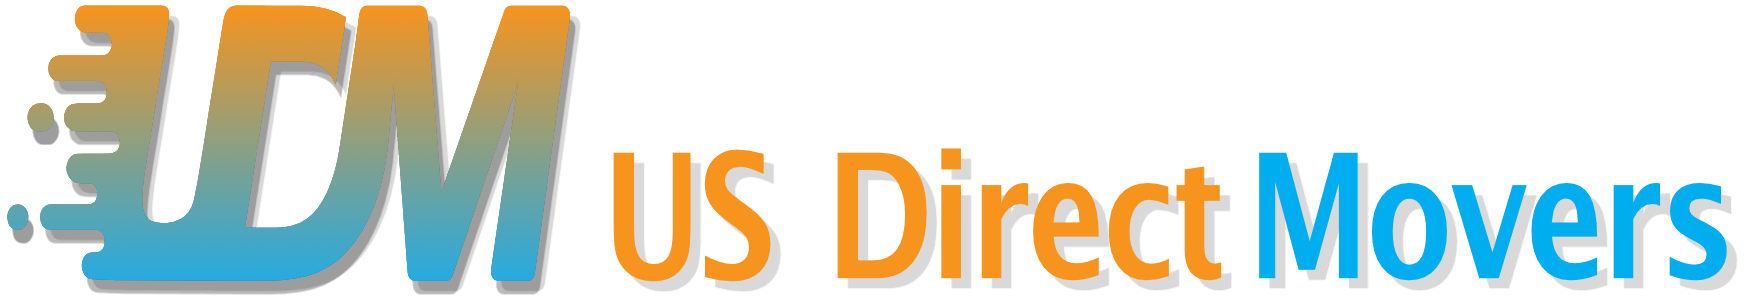 US Direct Movers